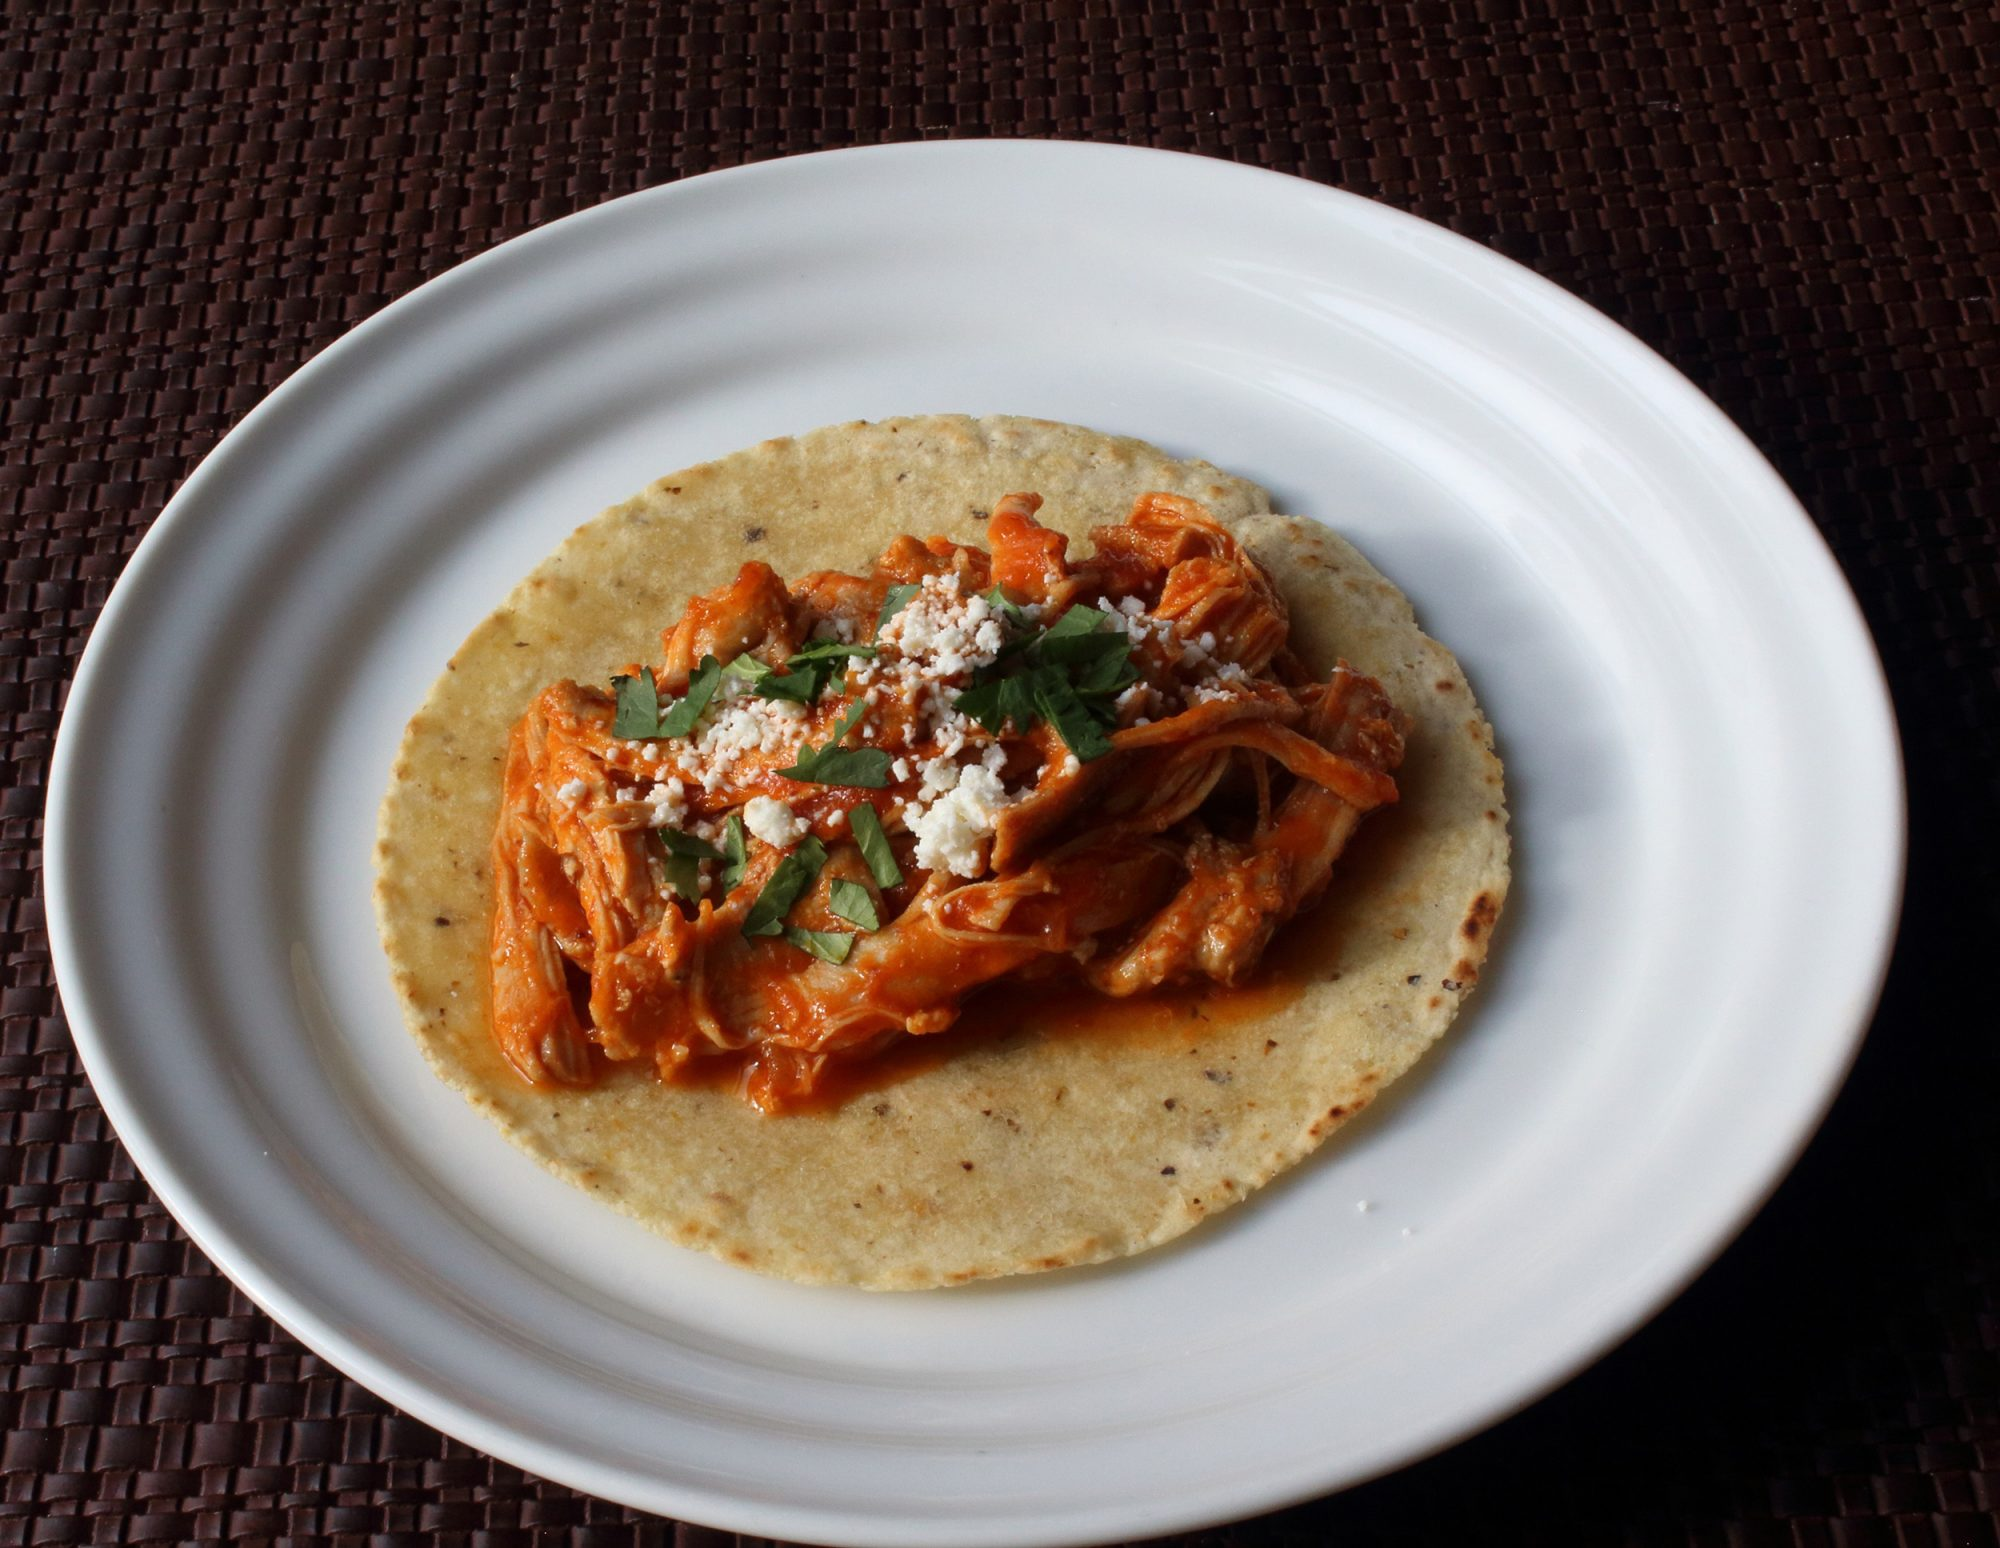 shredded chicken with tomato sauce on tortilla